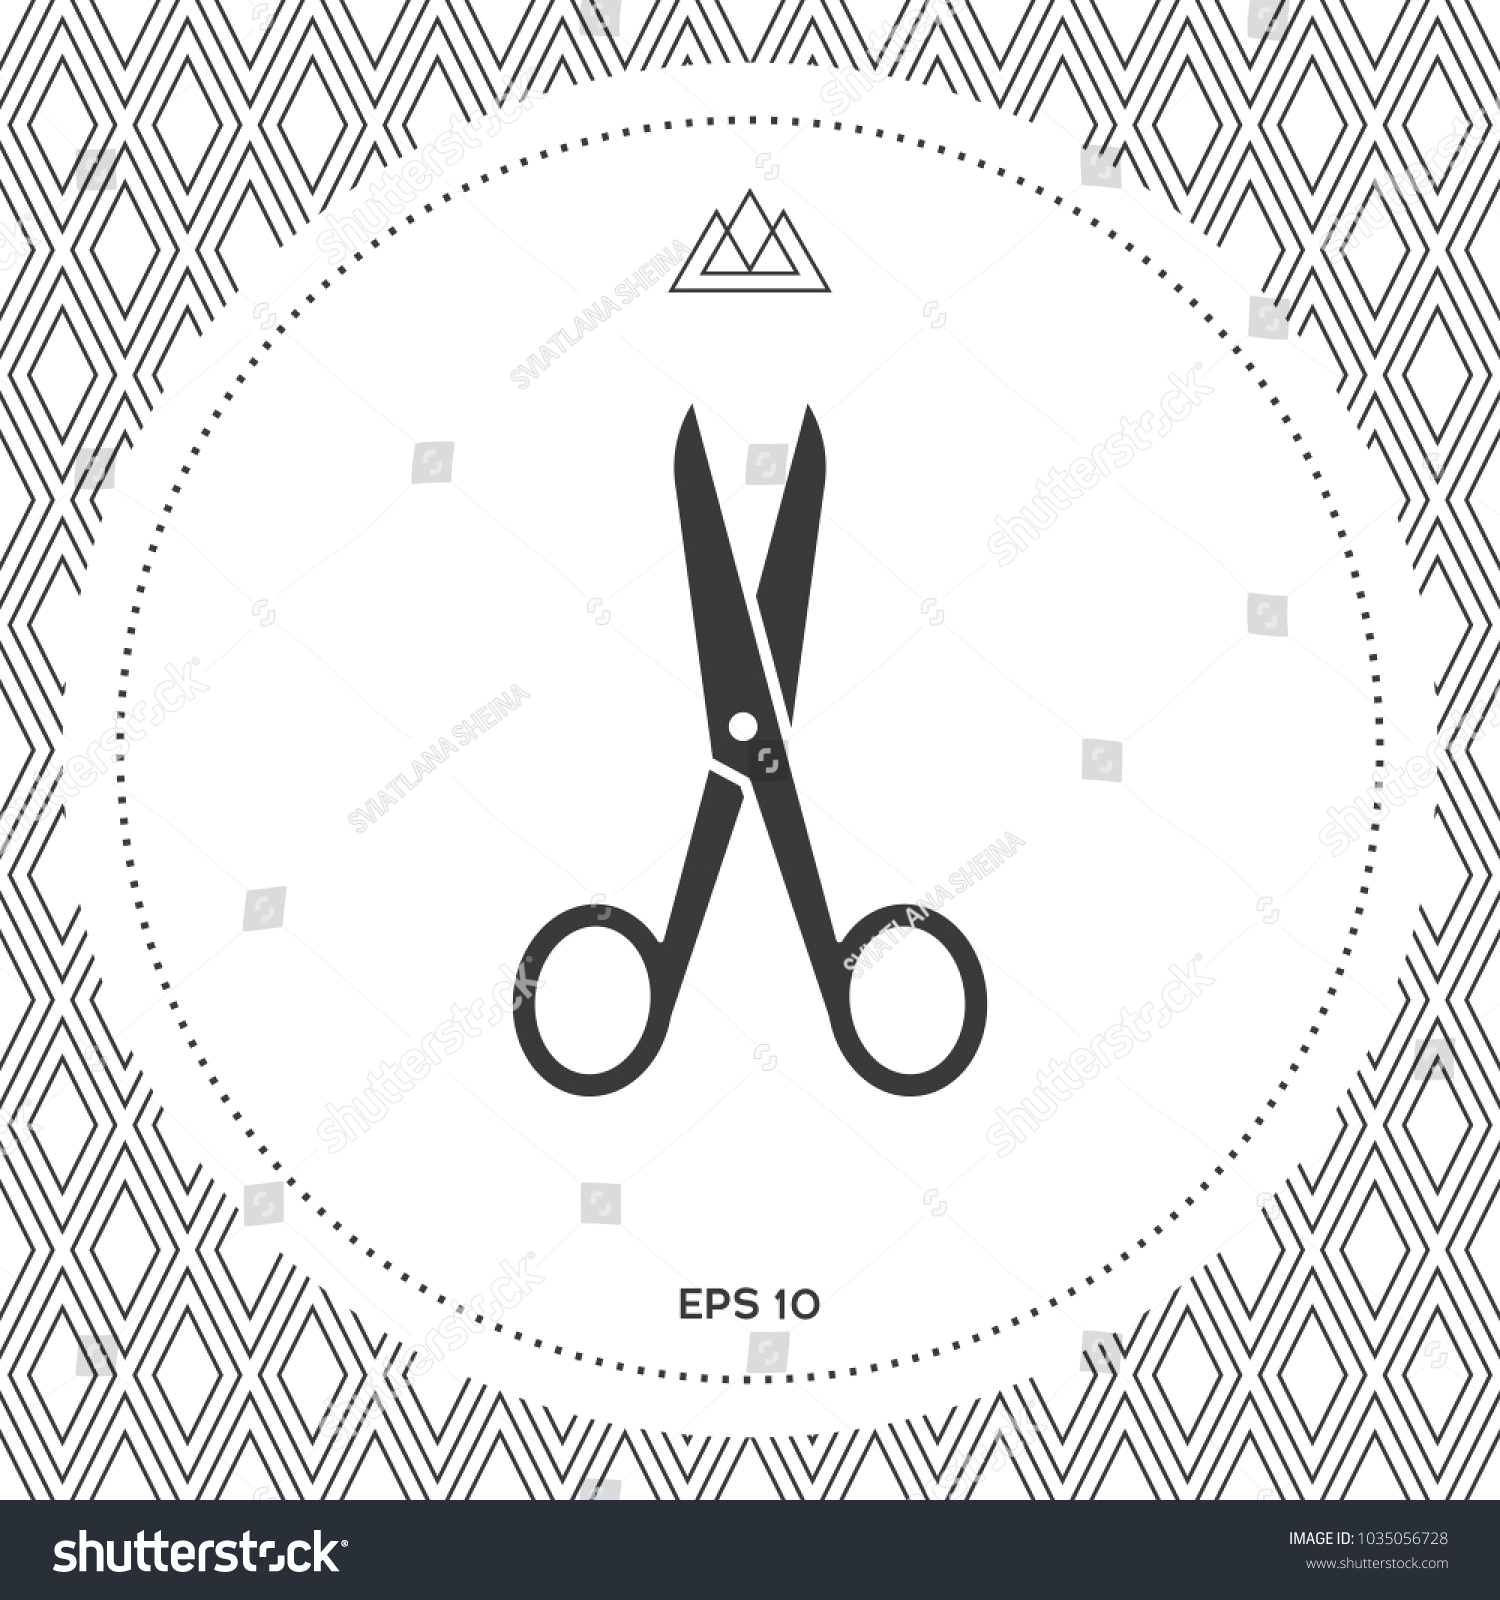 Scissors icon symbol stock vector 1035056728 shutterstock scissors icon symbol biocorpaavc